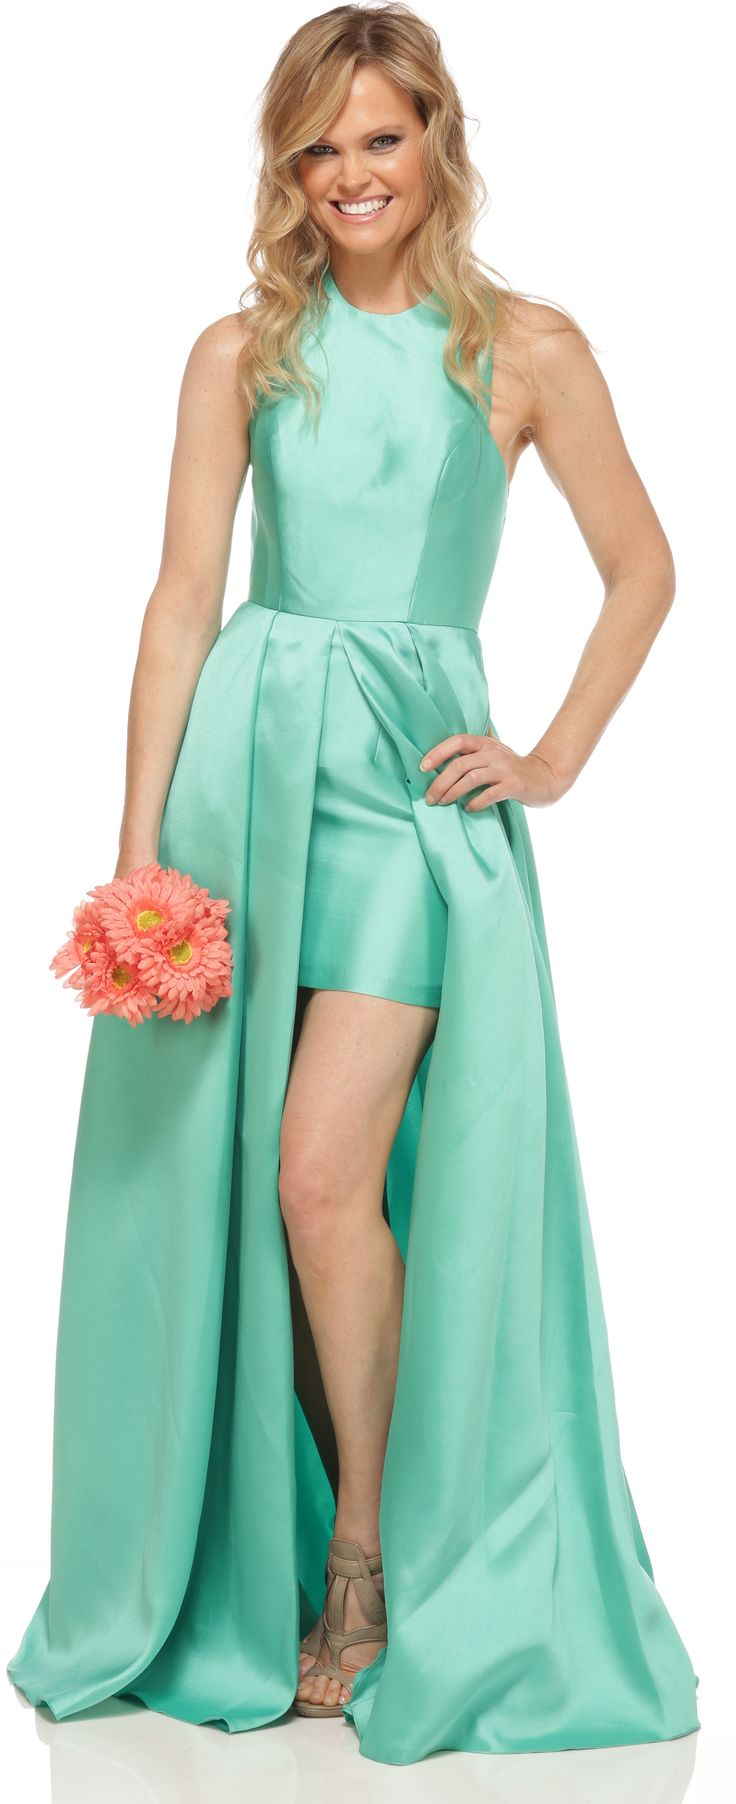 15 best TRENDING: High-Low images on Pinterest | Pageant dresses ...